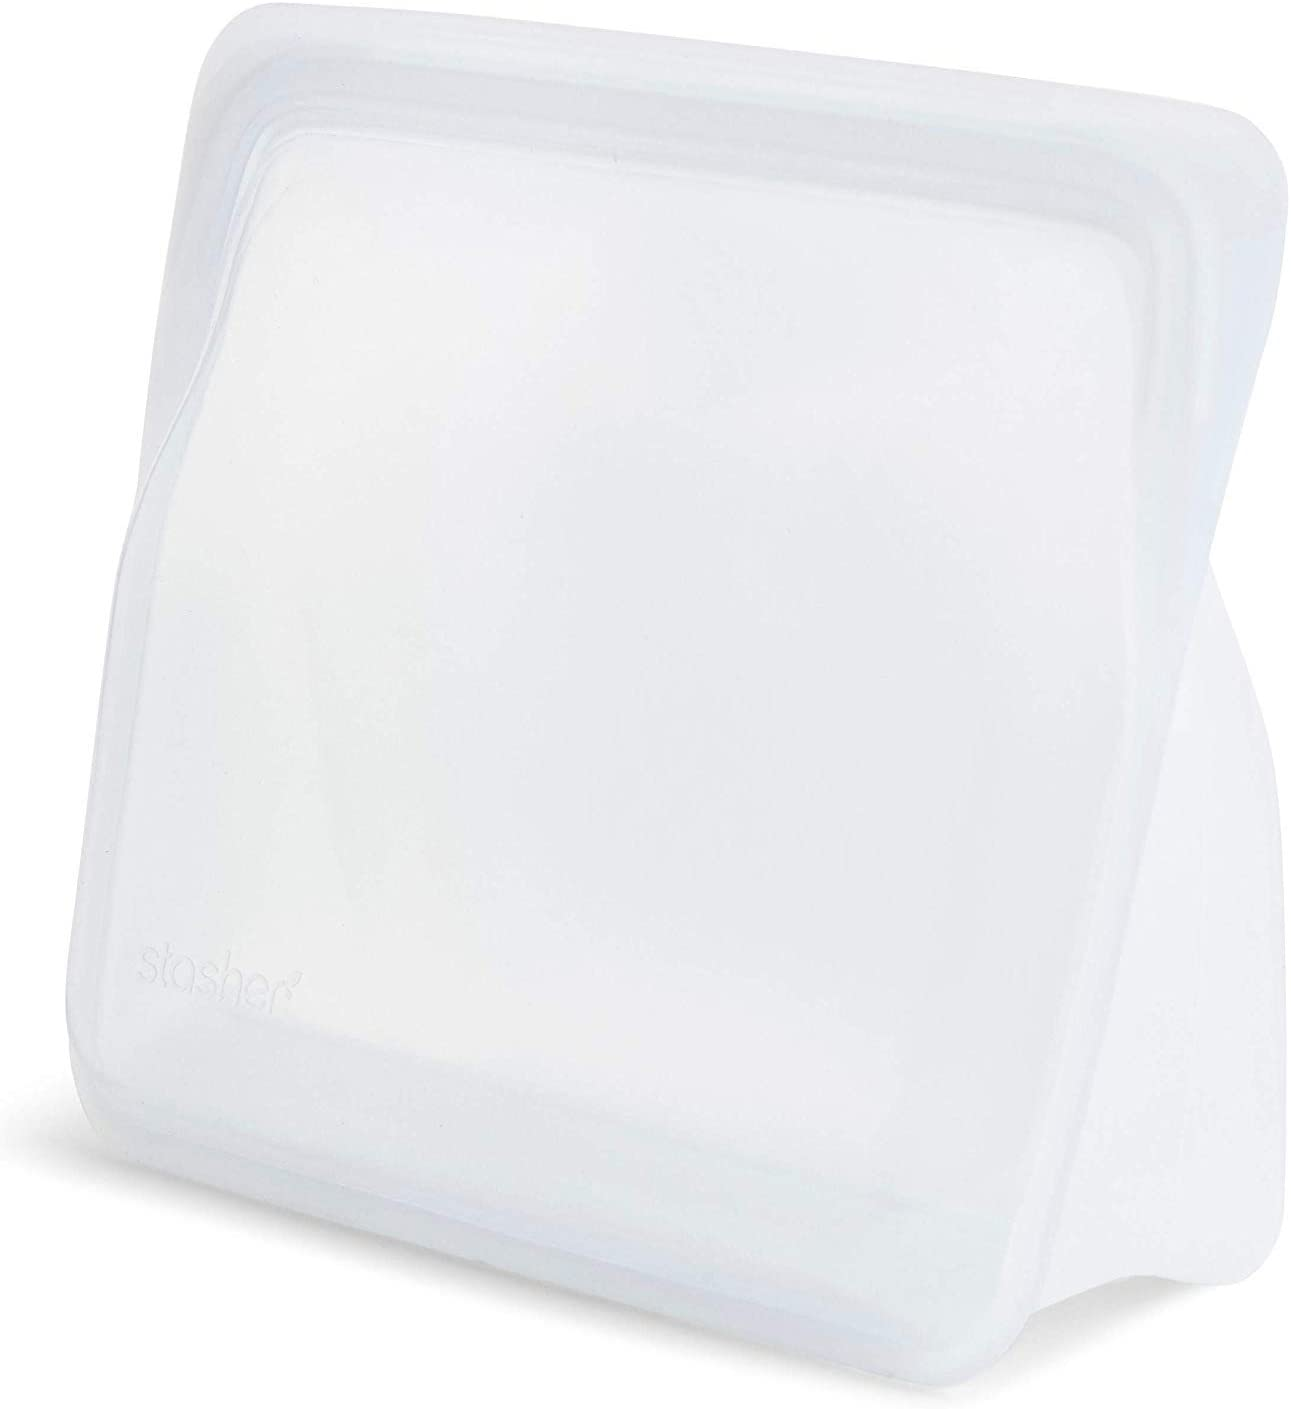 Stasher Re-Usable Food-Grade Platinum Silicone Stand Up Bag for Eating from/Cooking, Freezing and Storing in/Organising/Travelling, 17.80 x 20.30 cm/1.65 Litre/56 Fluid Ounces, Clear